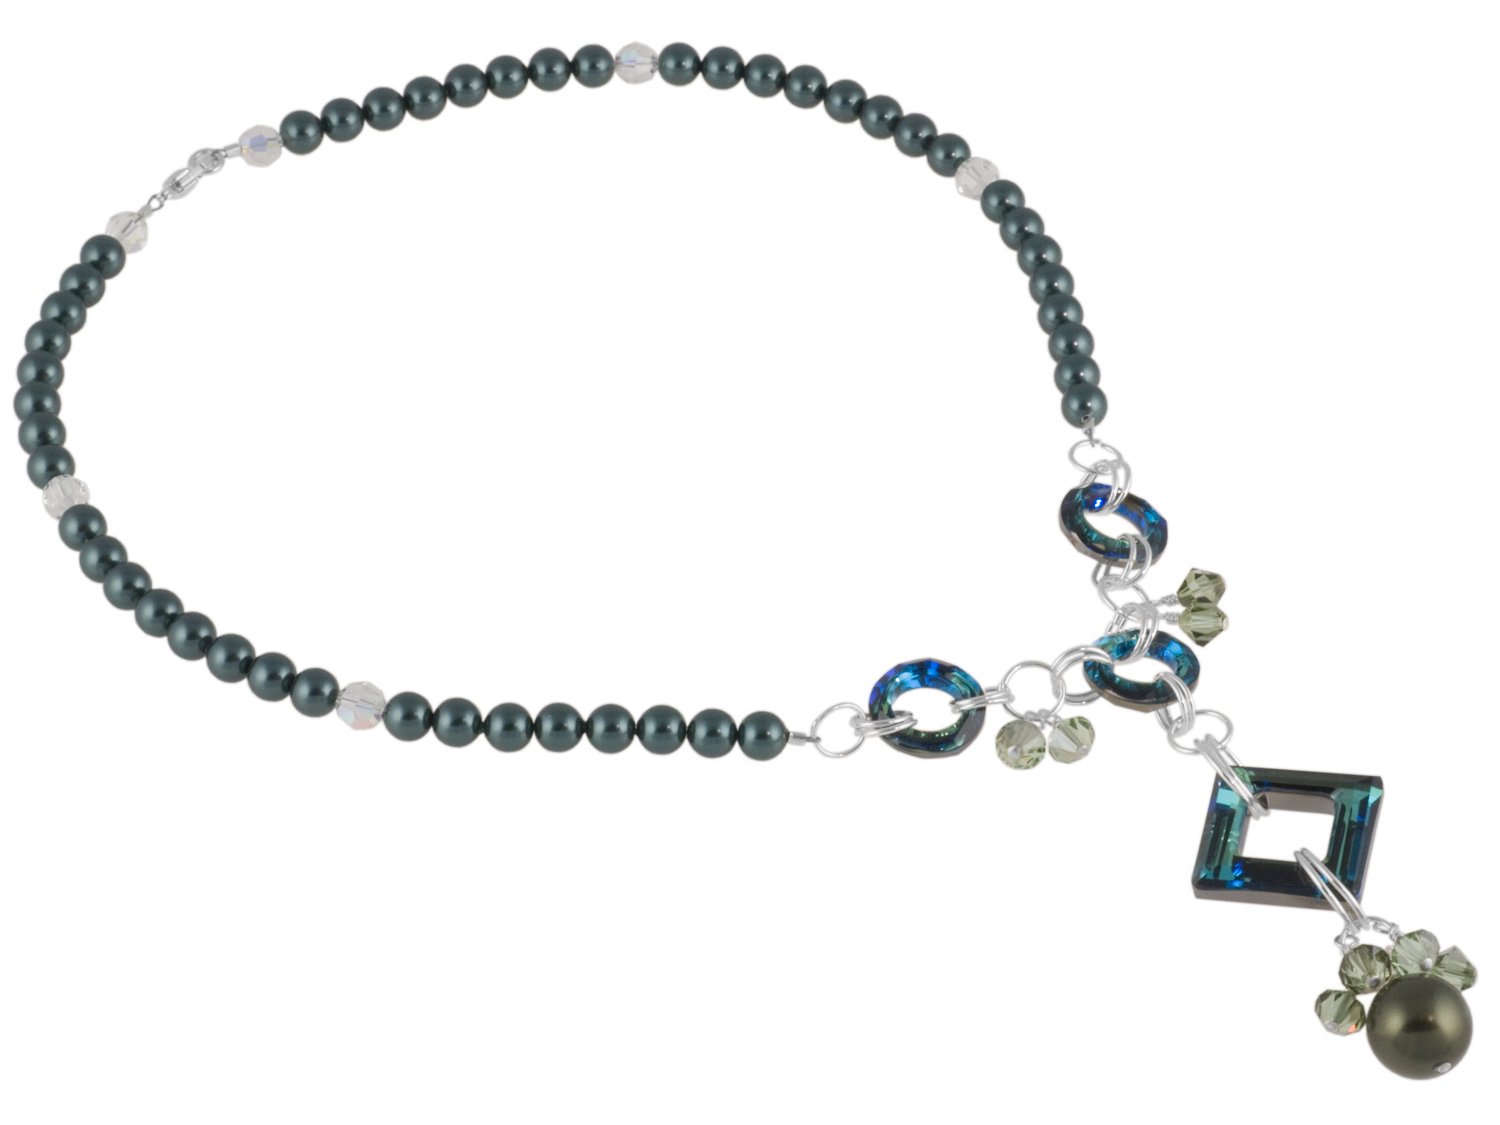 Bermuda Blue Frame Necklace